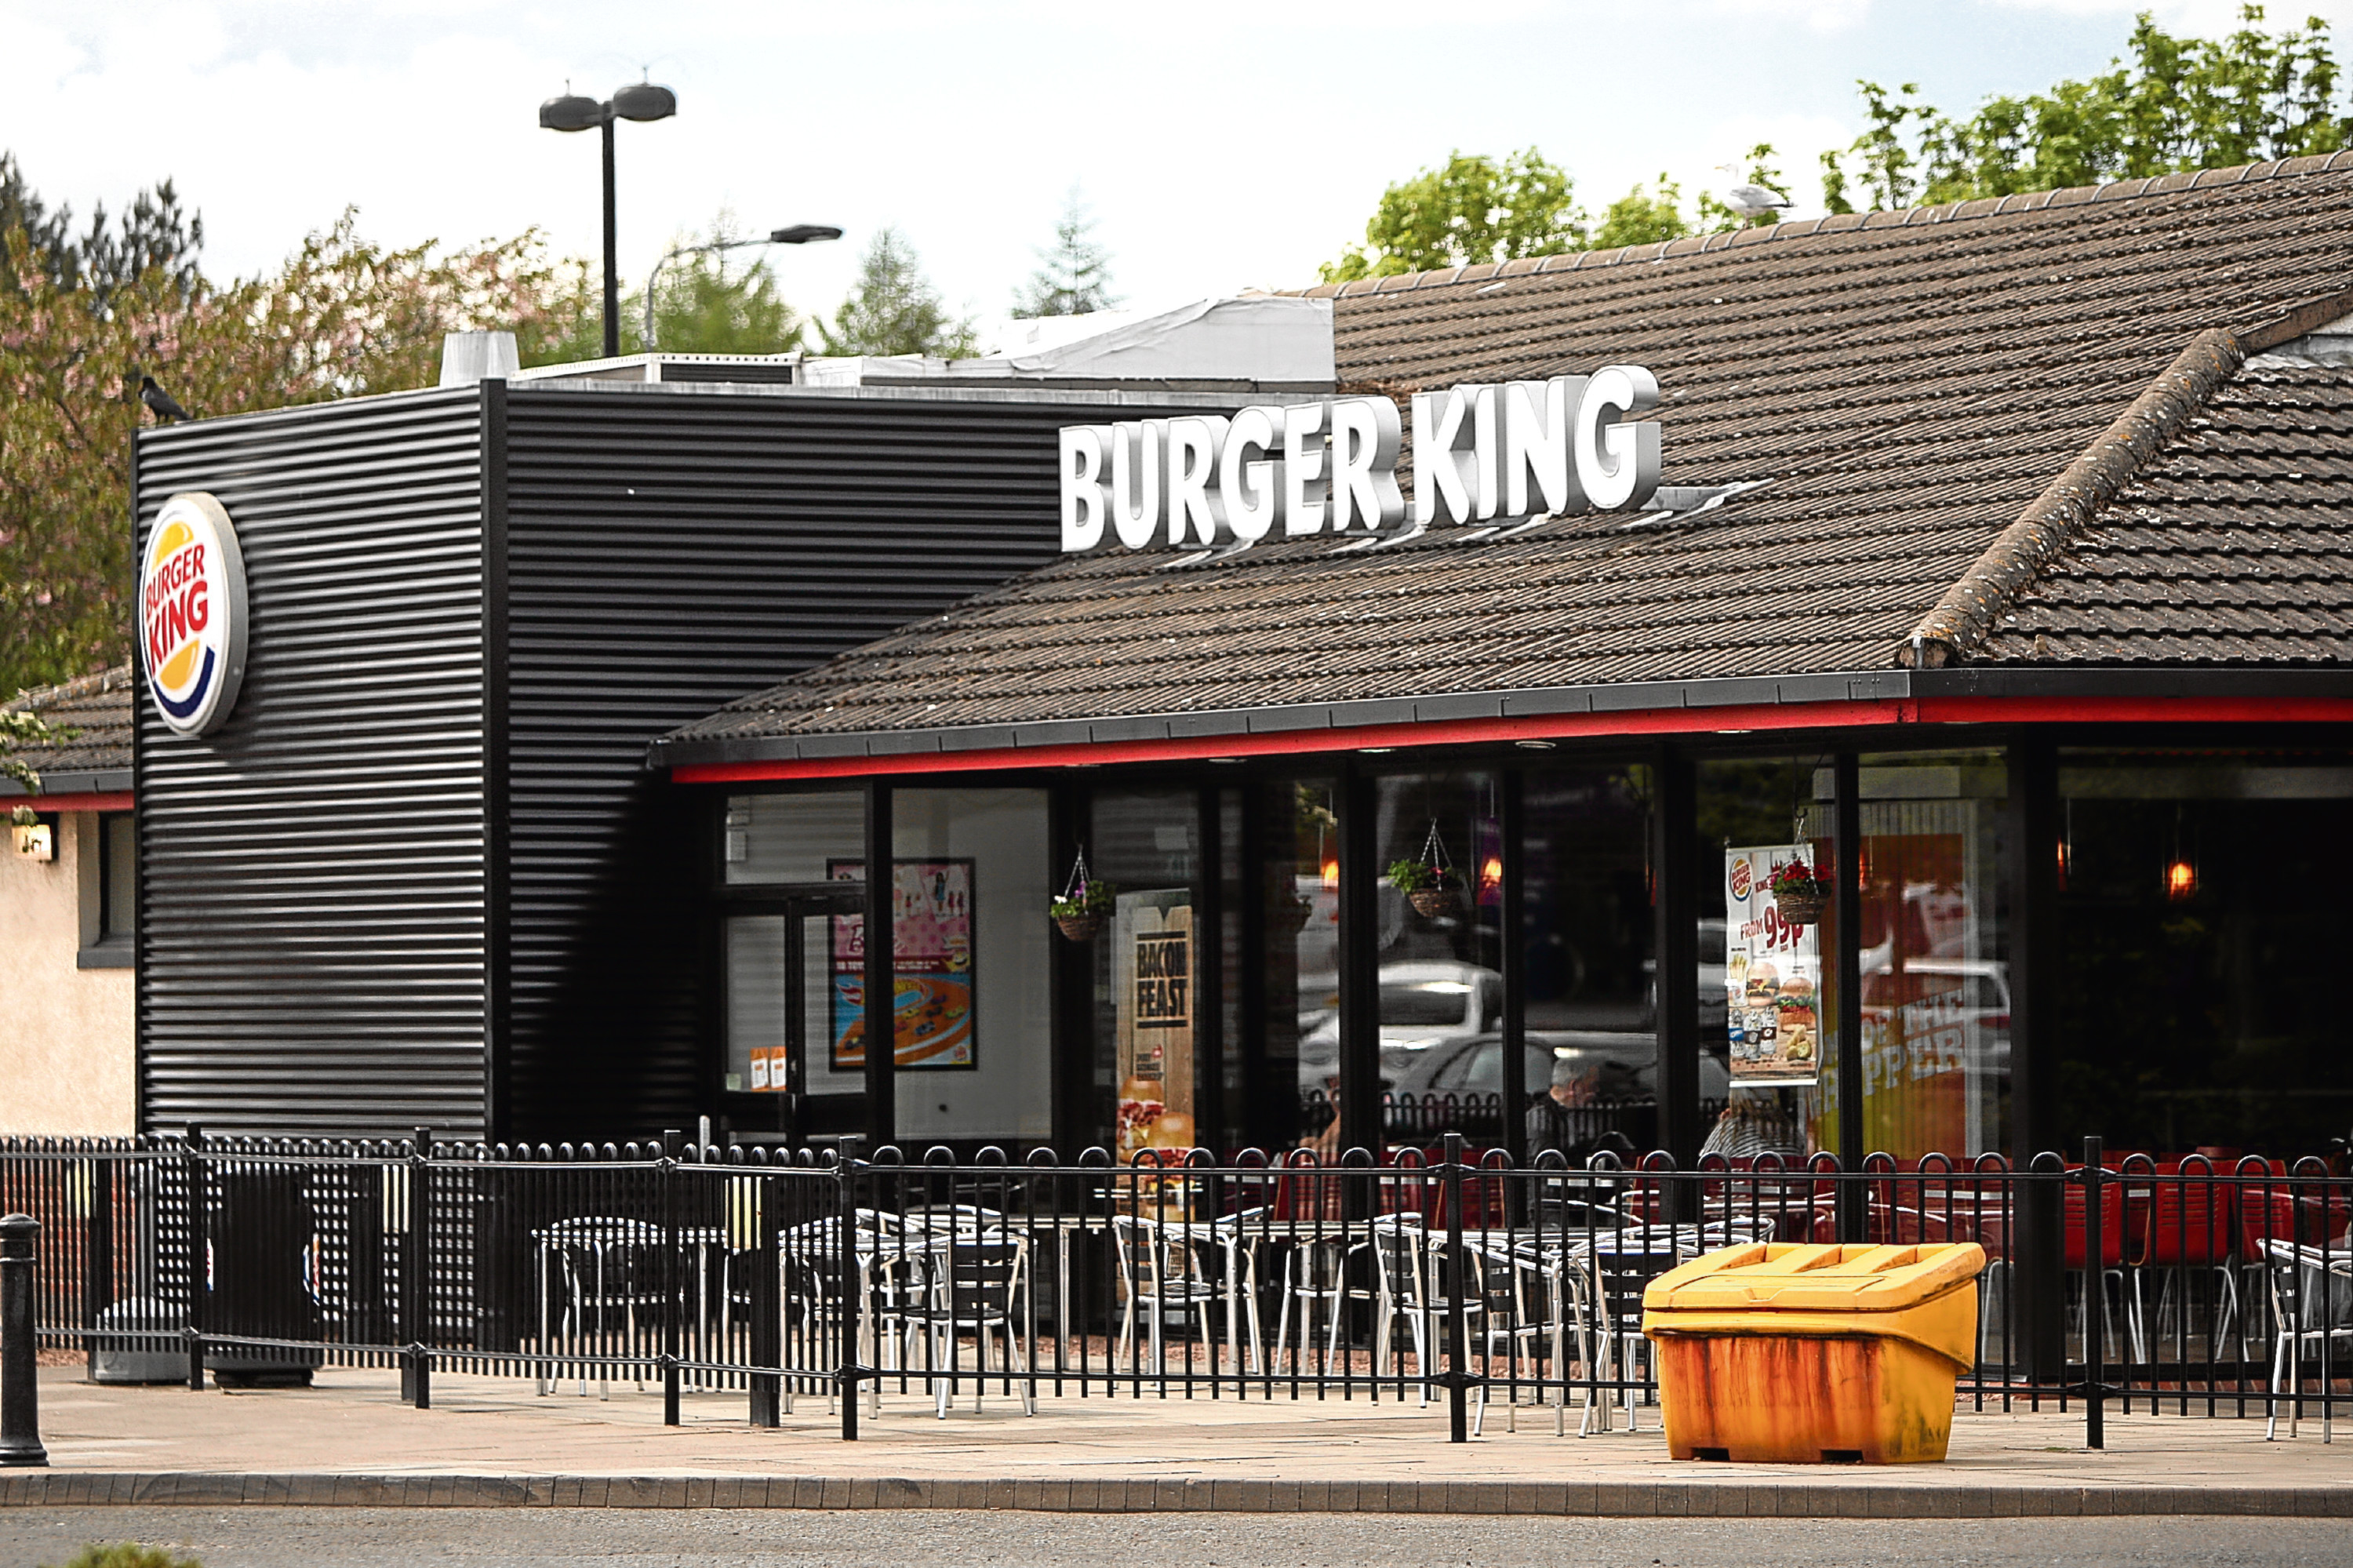 The Burger King outlet at Kingsway West Retail Park.